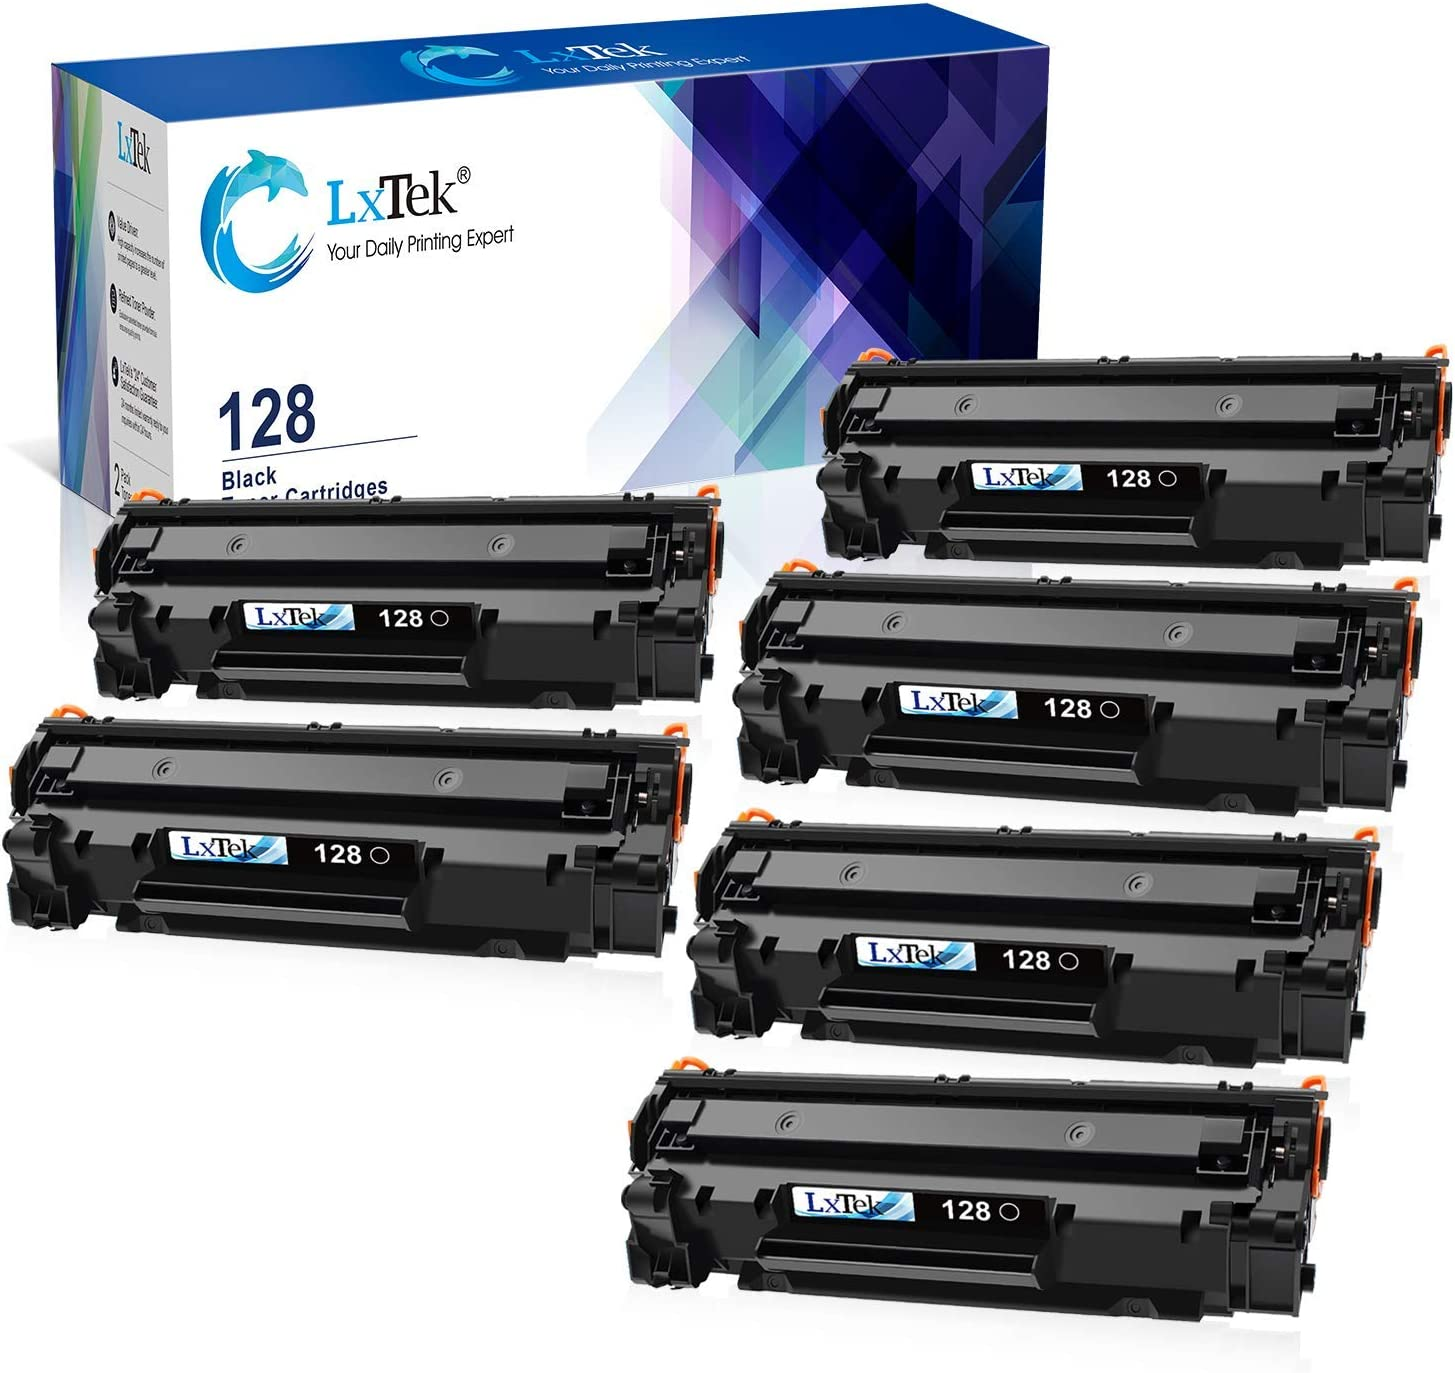 LxTek Compatible Toner Cartridge Replacement for Canon 128 CRG128 2 Black Bundled with 4 Black (Total 6 Pack)